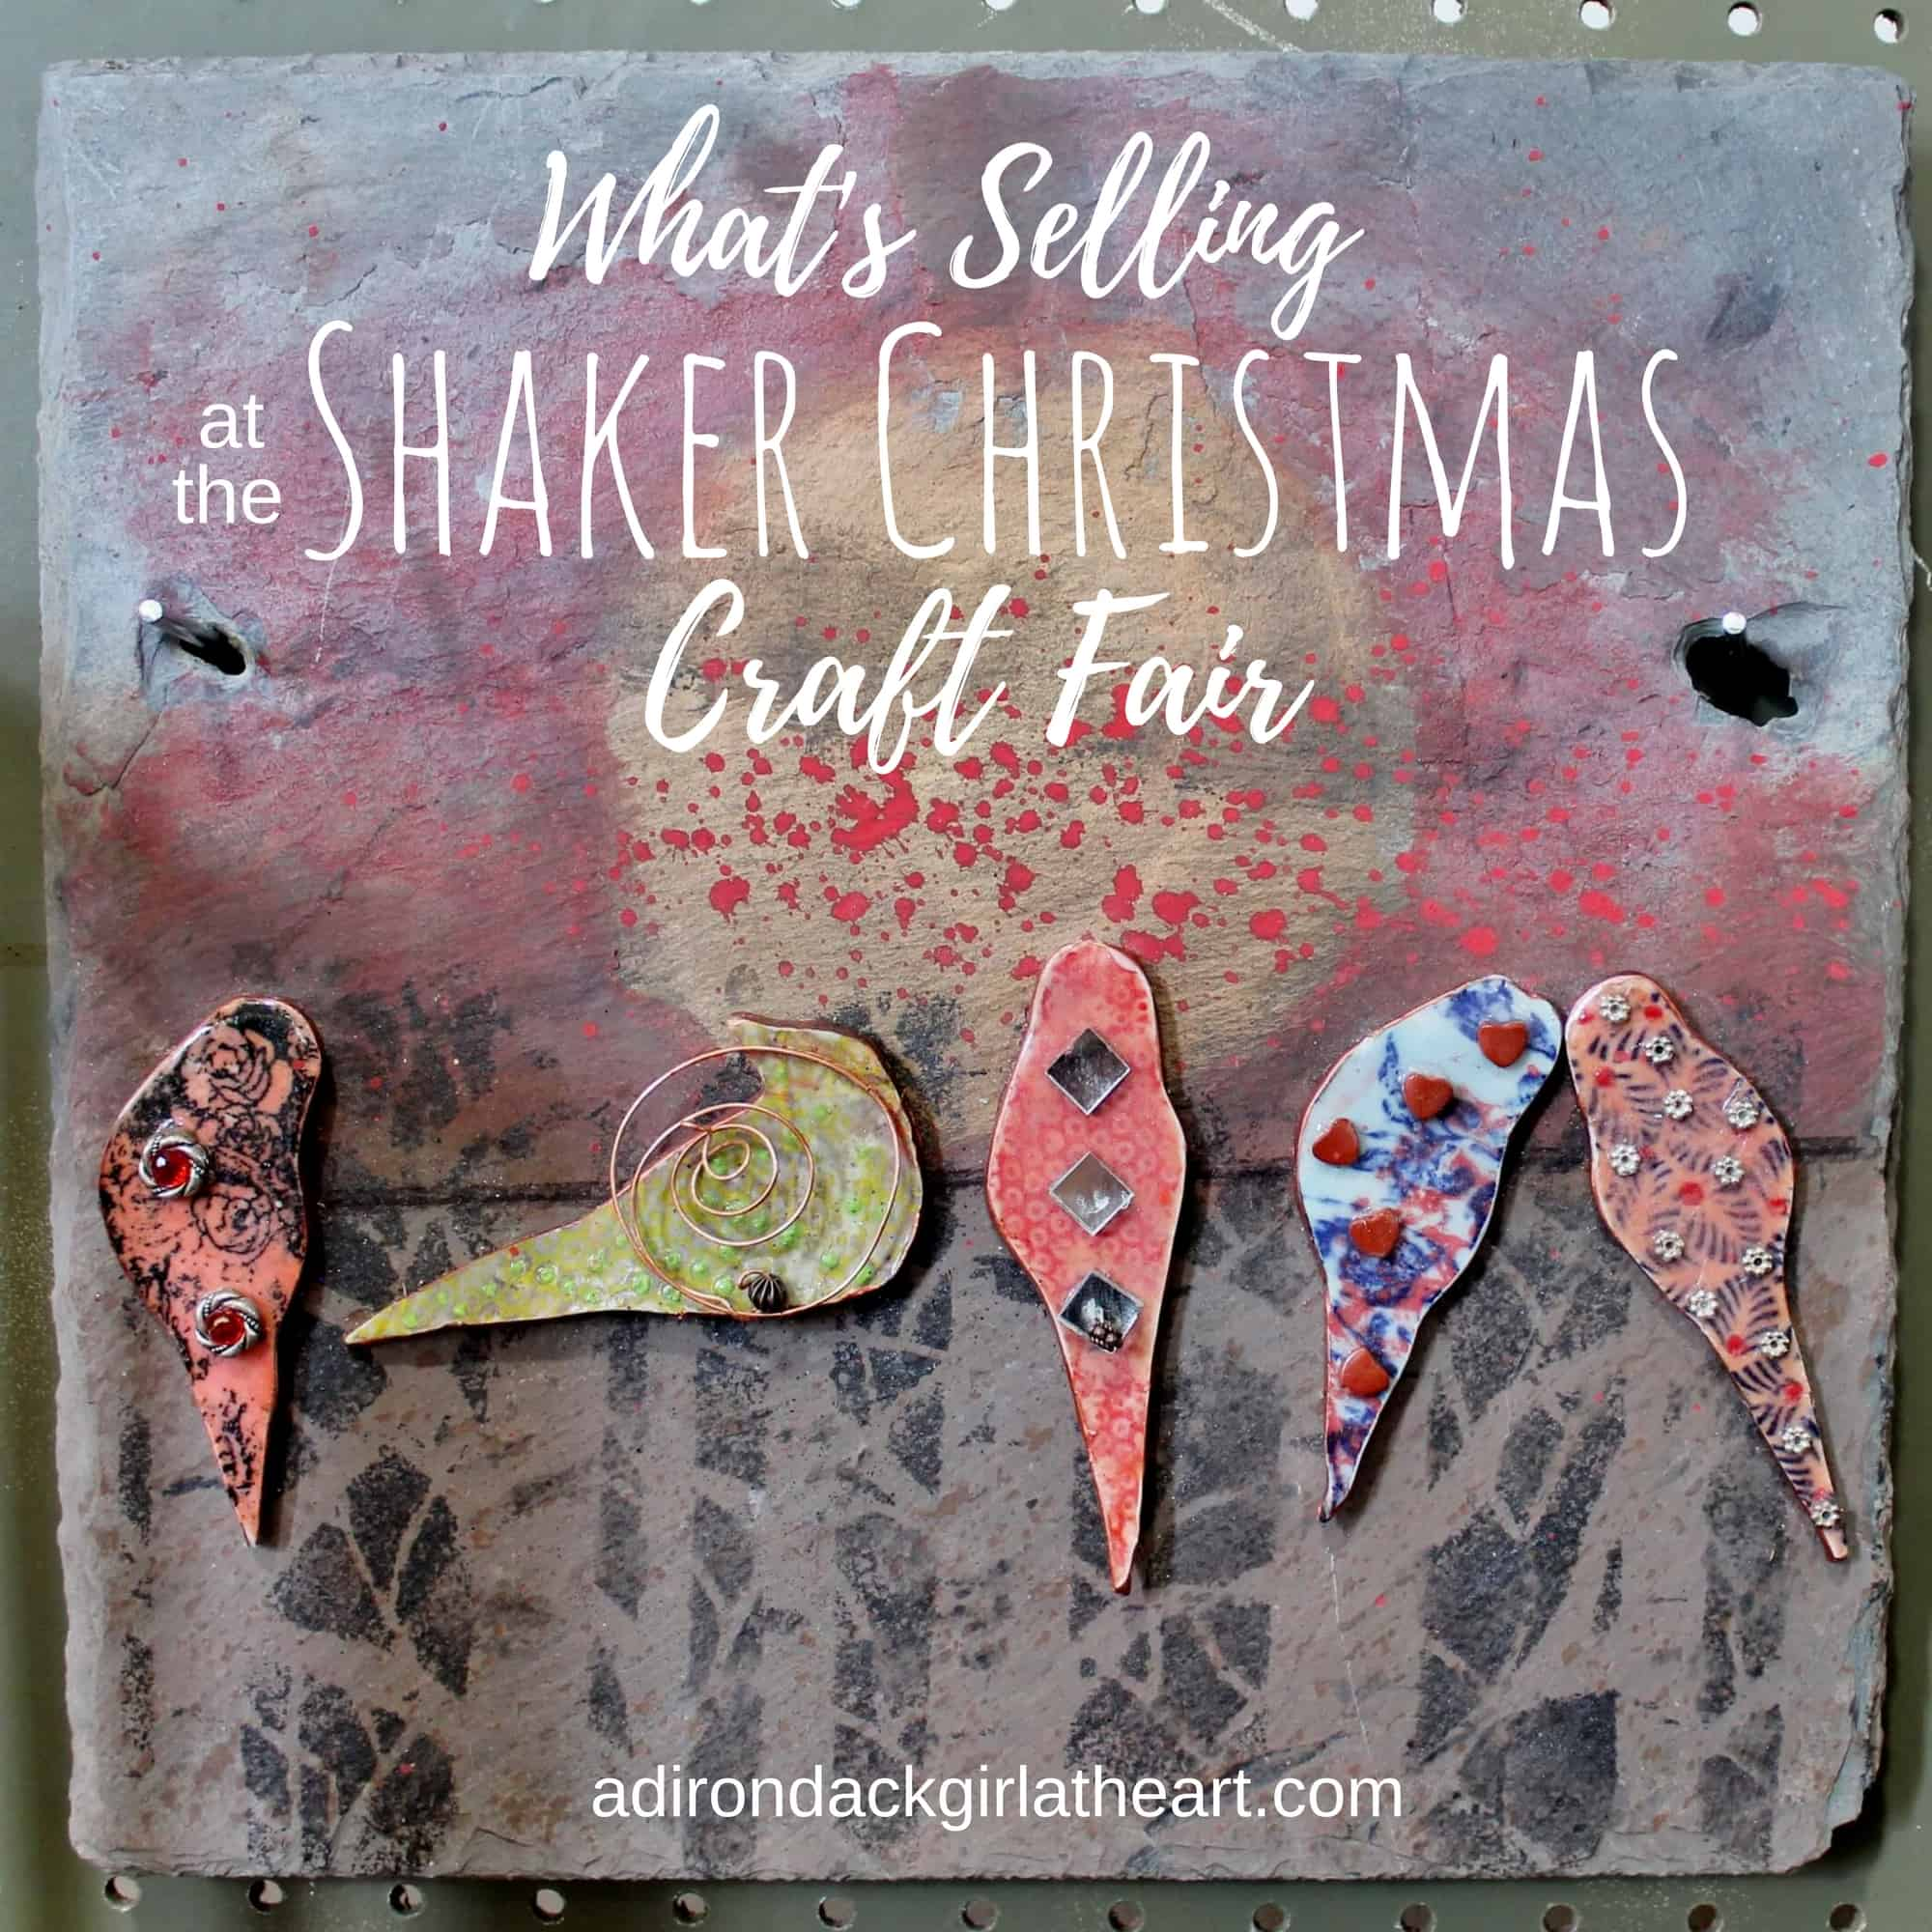 What 39 s selling at the shaker christmas craft fair for Craft fairs near me november 2017